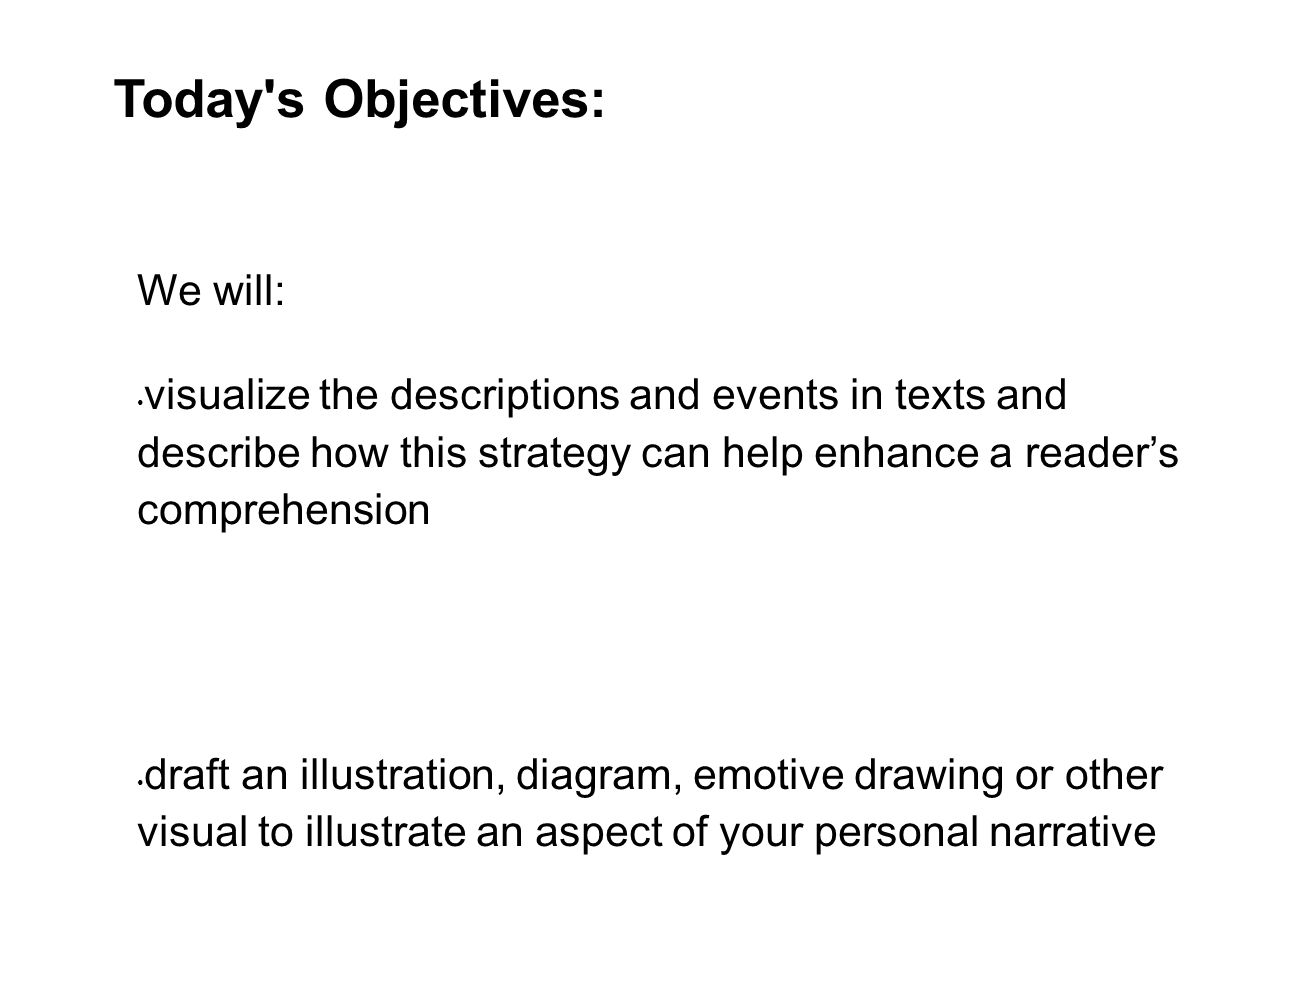 Today s Objectives: We will: